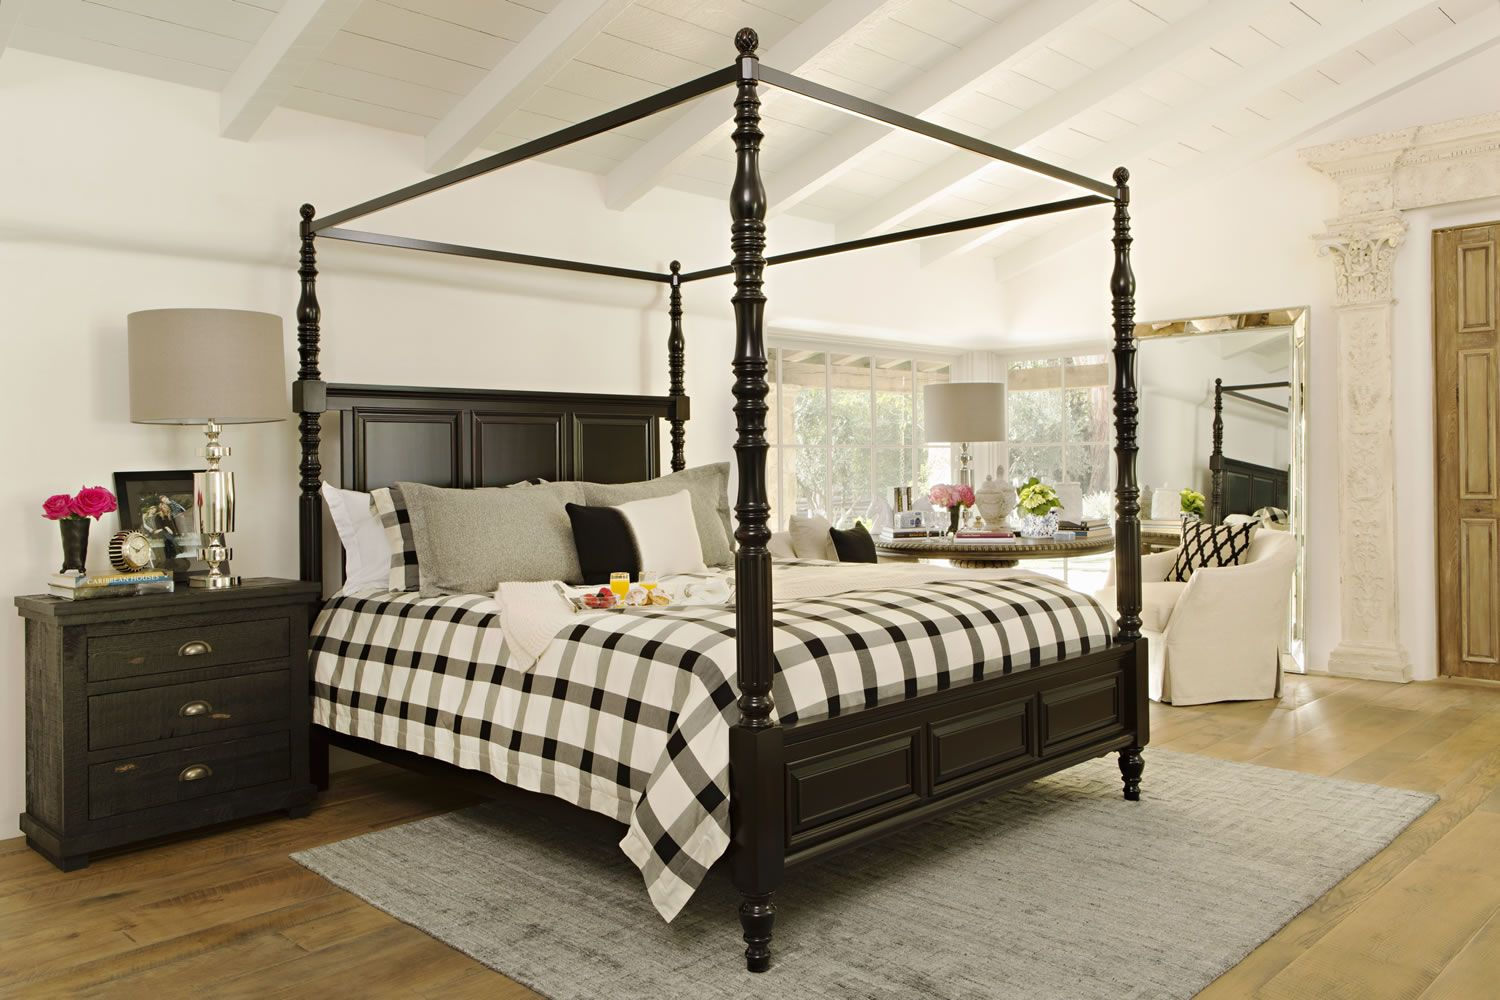 Jeff Lewis California king canopy bed, Chic bedroom